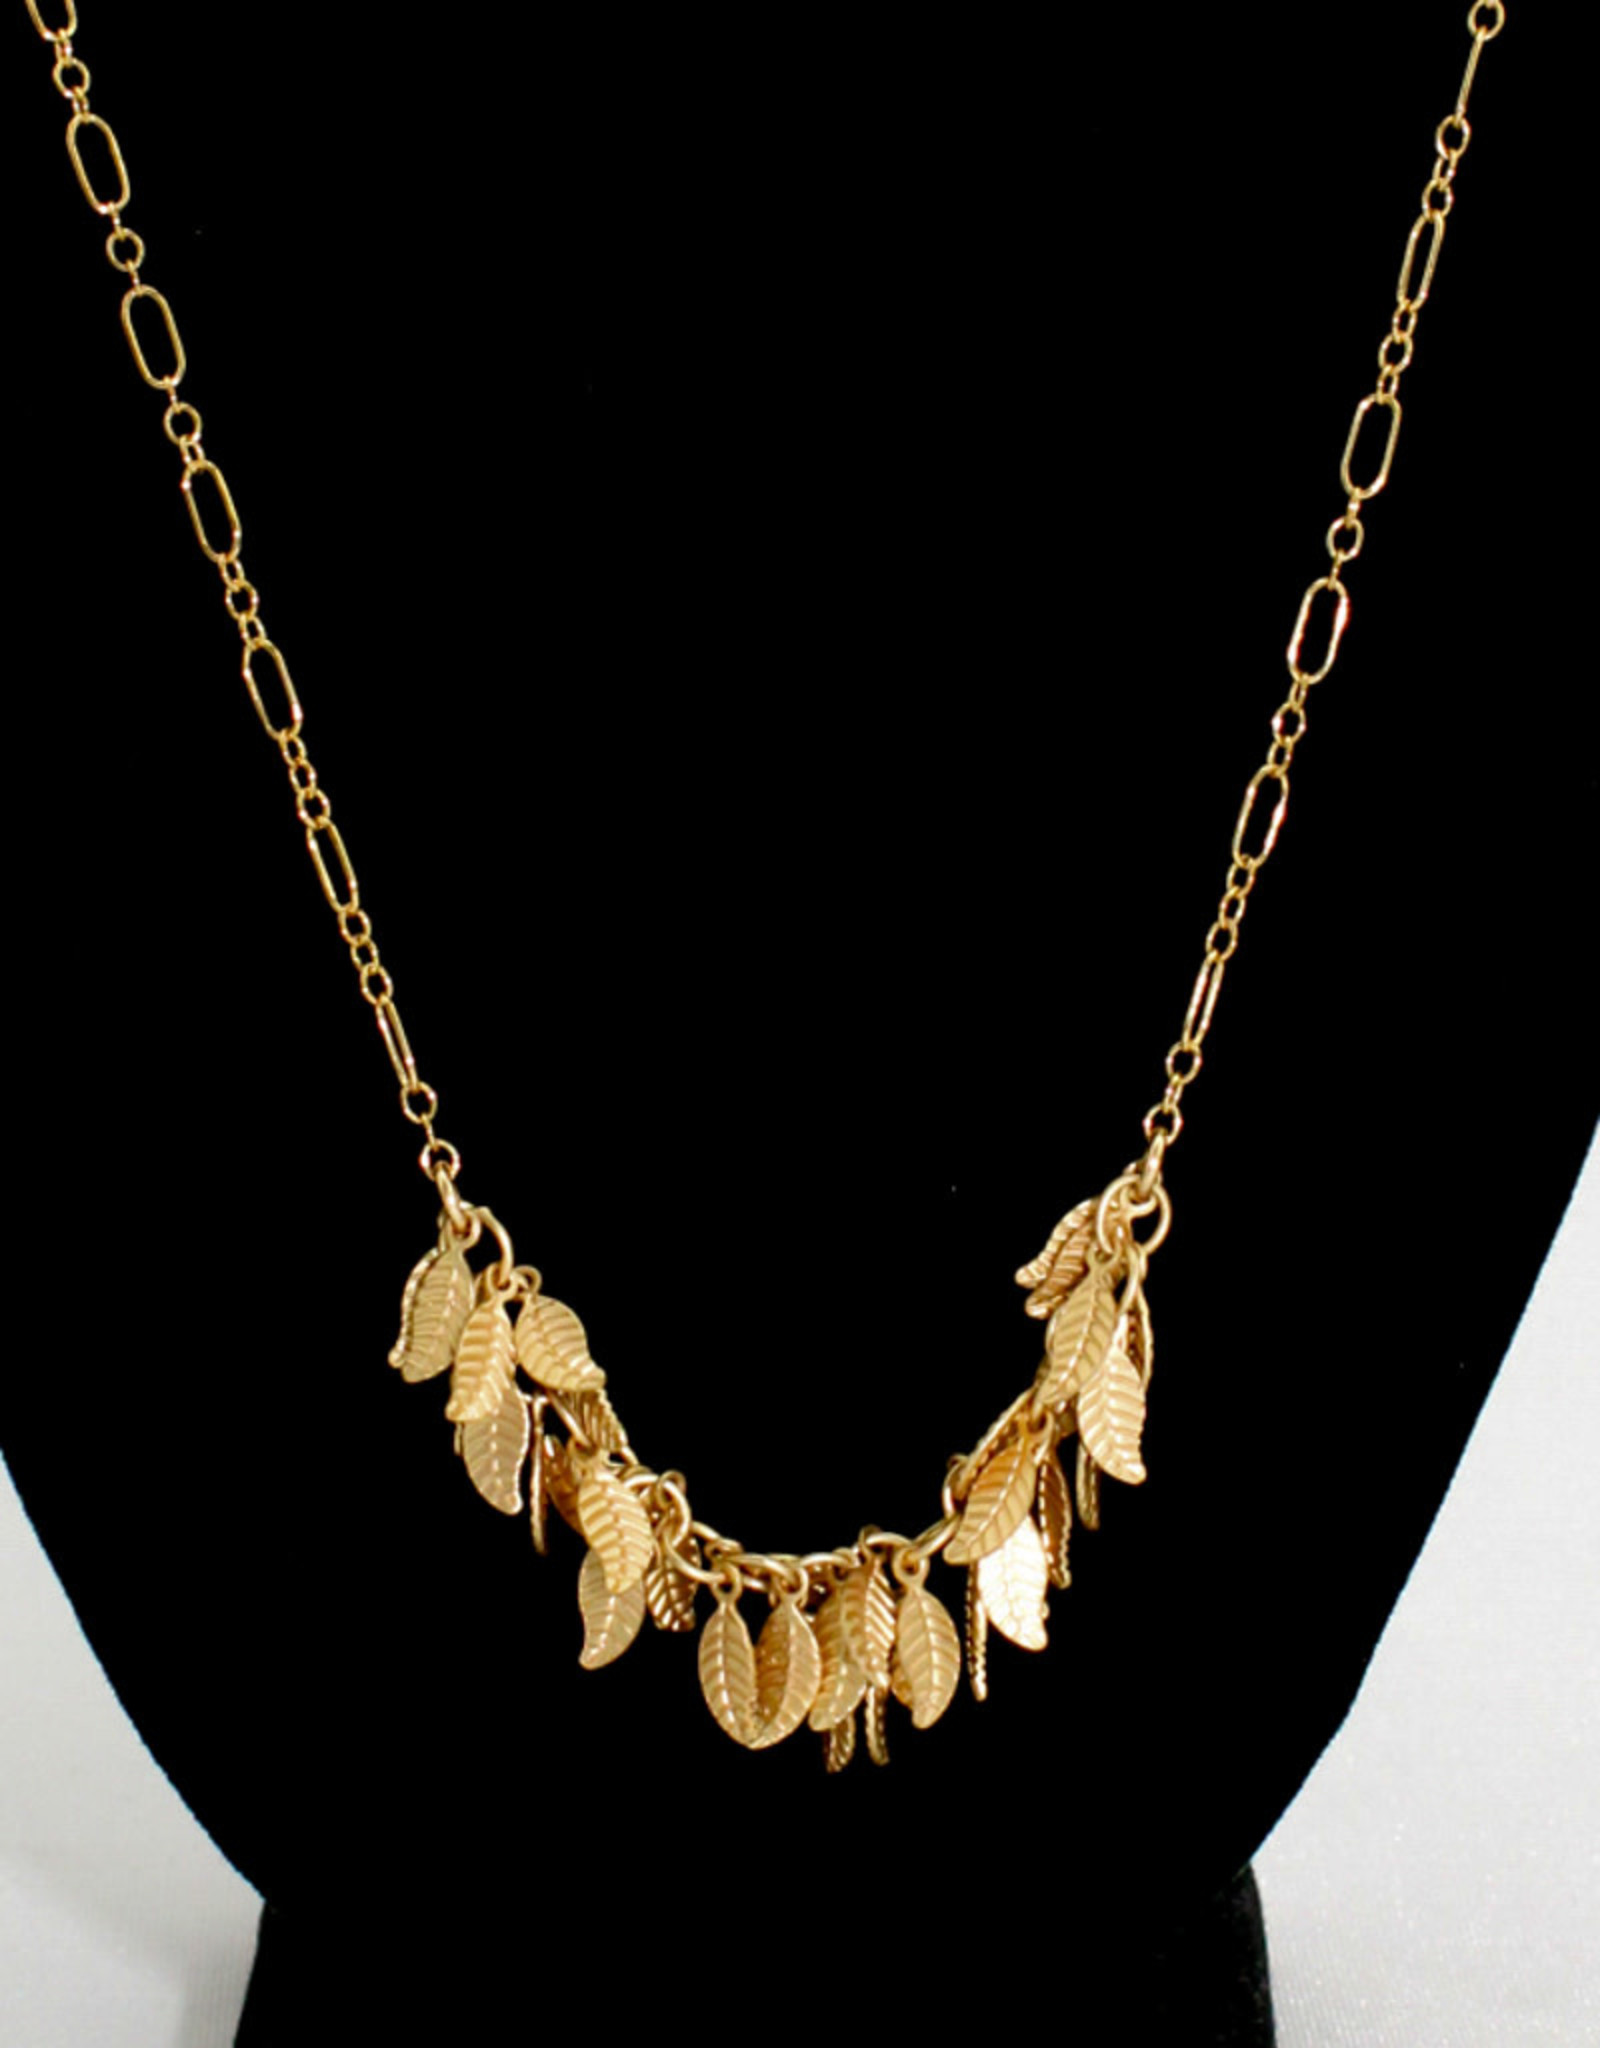 Stefanie Wolf Designs Gold Leaf Collection Petite Necklace